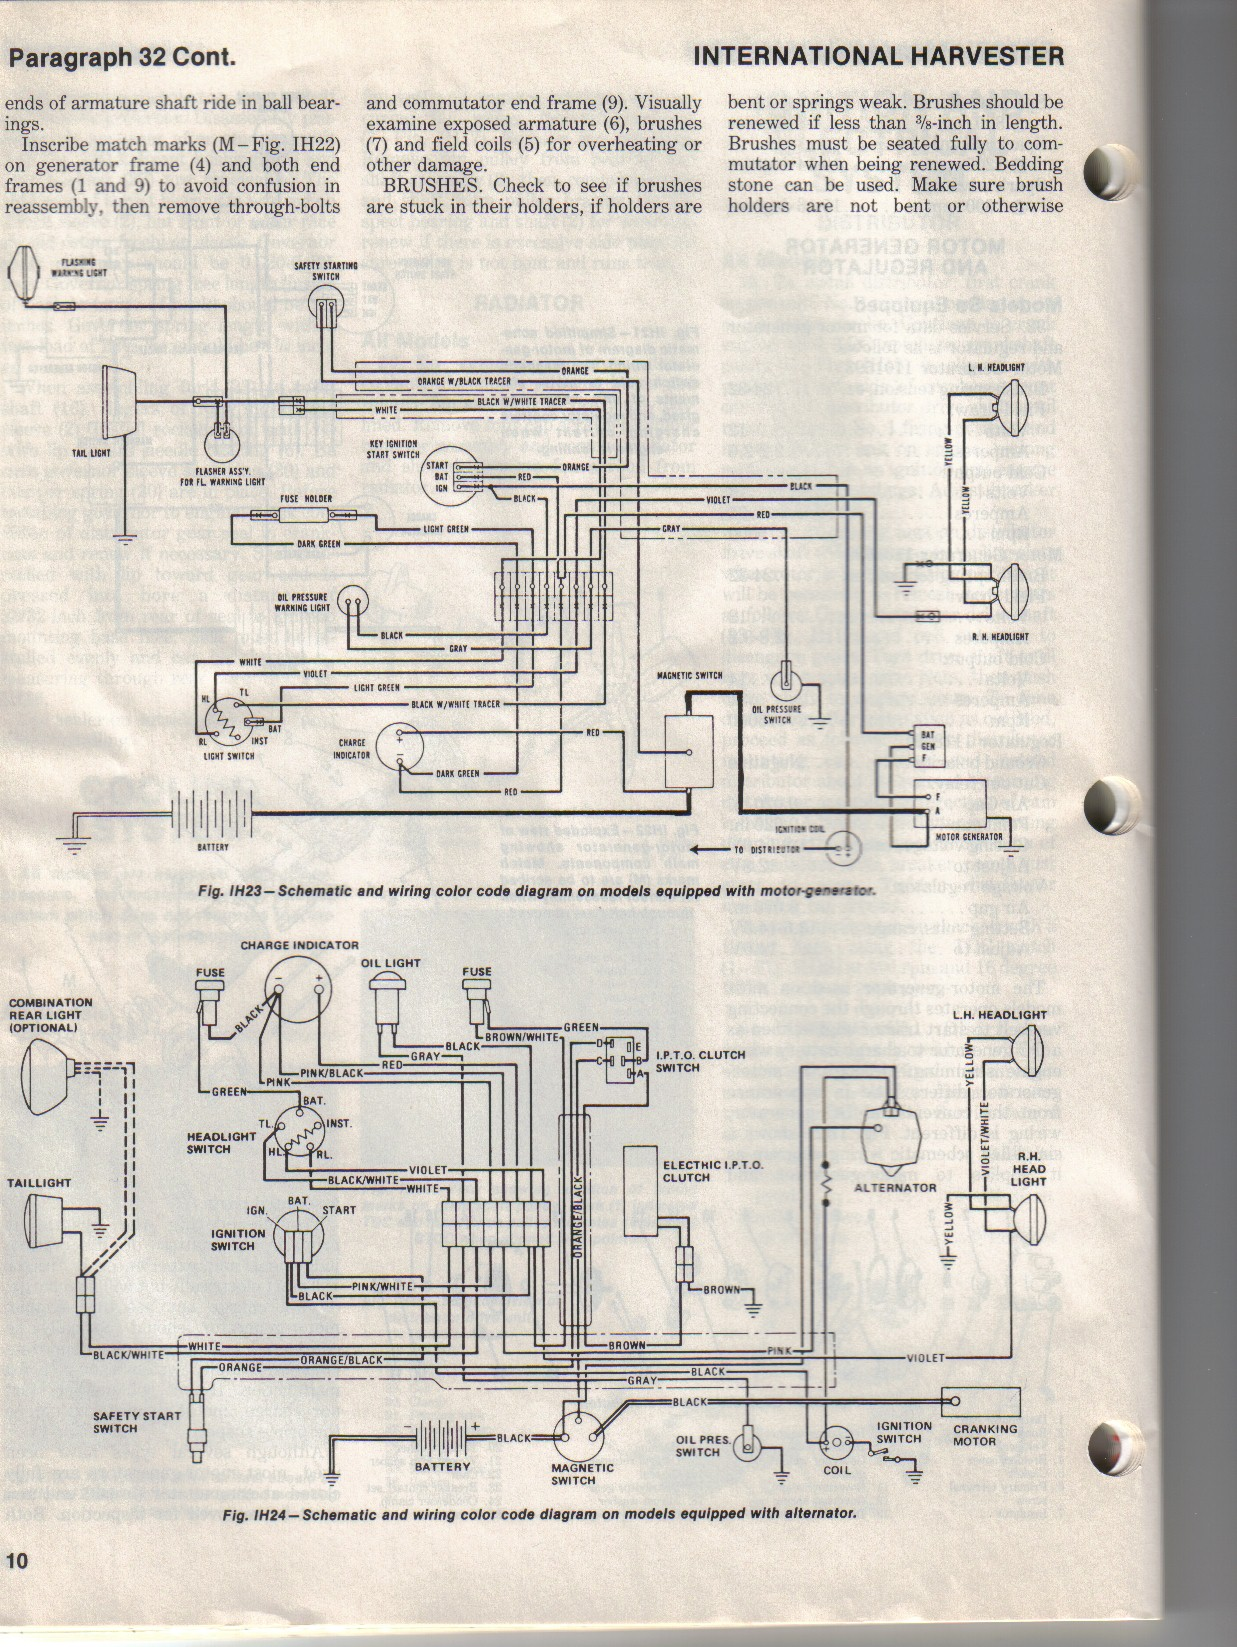 Page 10 farmallcub(dot)info manual galleries cub lowboy 154 wiring diagram at reclaimingppi.co